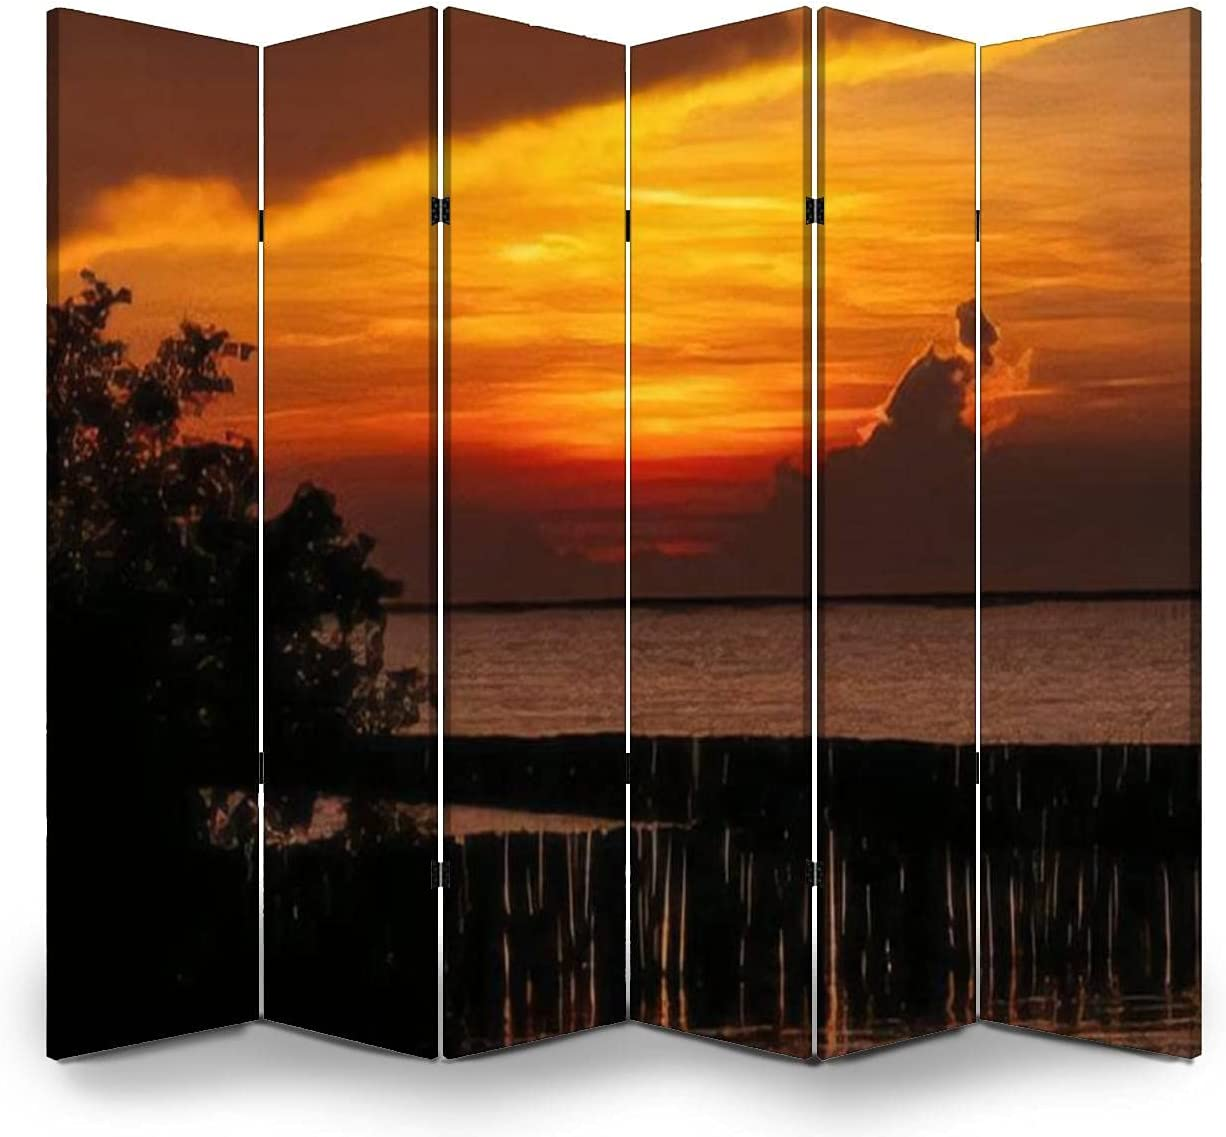 6 Panel Screen Room Divider Beautiful Outlet sale feature and red sky sunset Sales results No. 1 orange